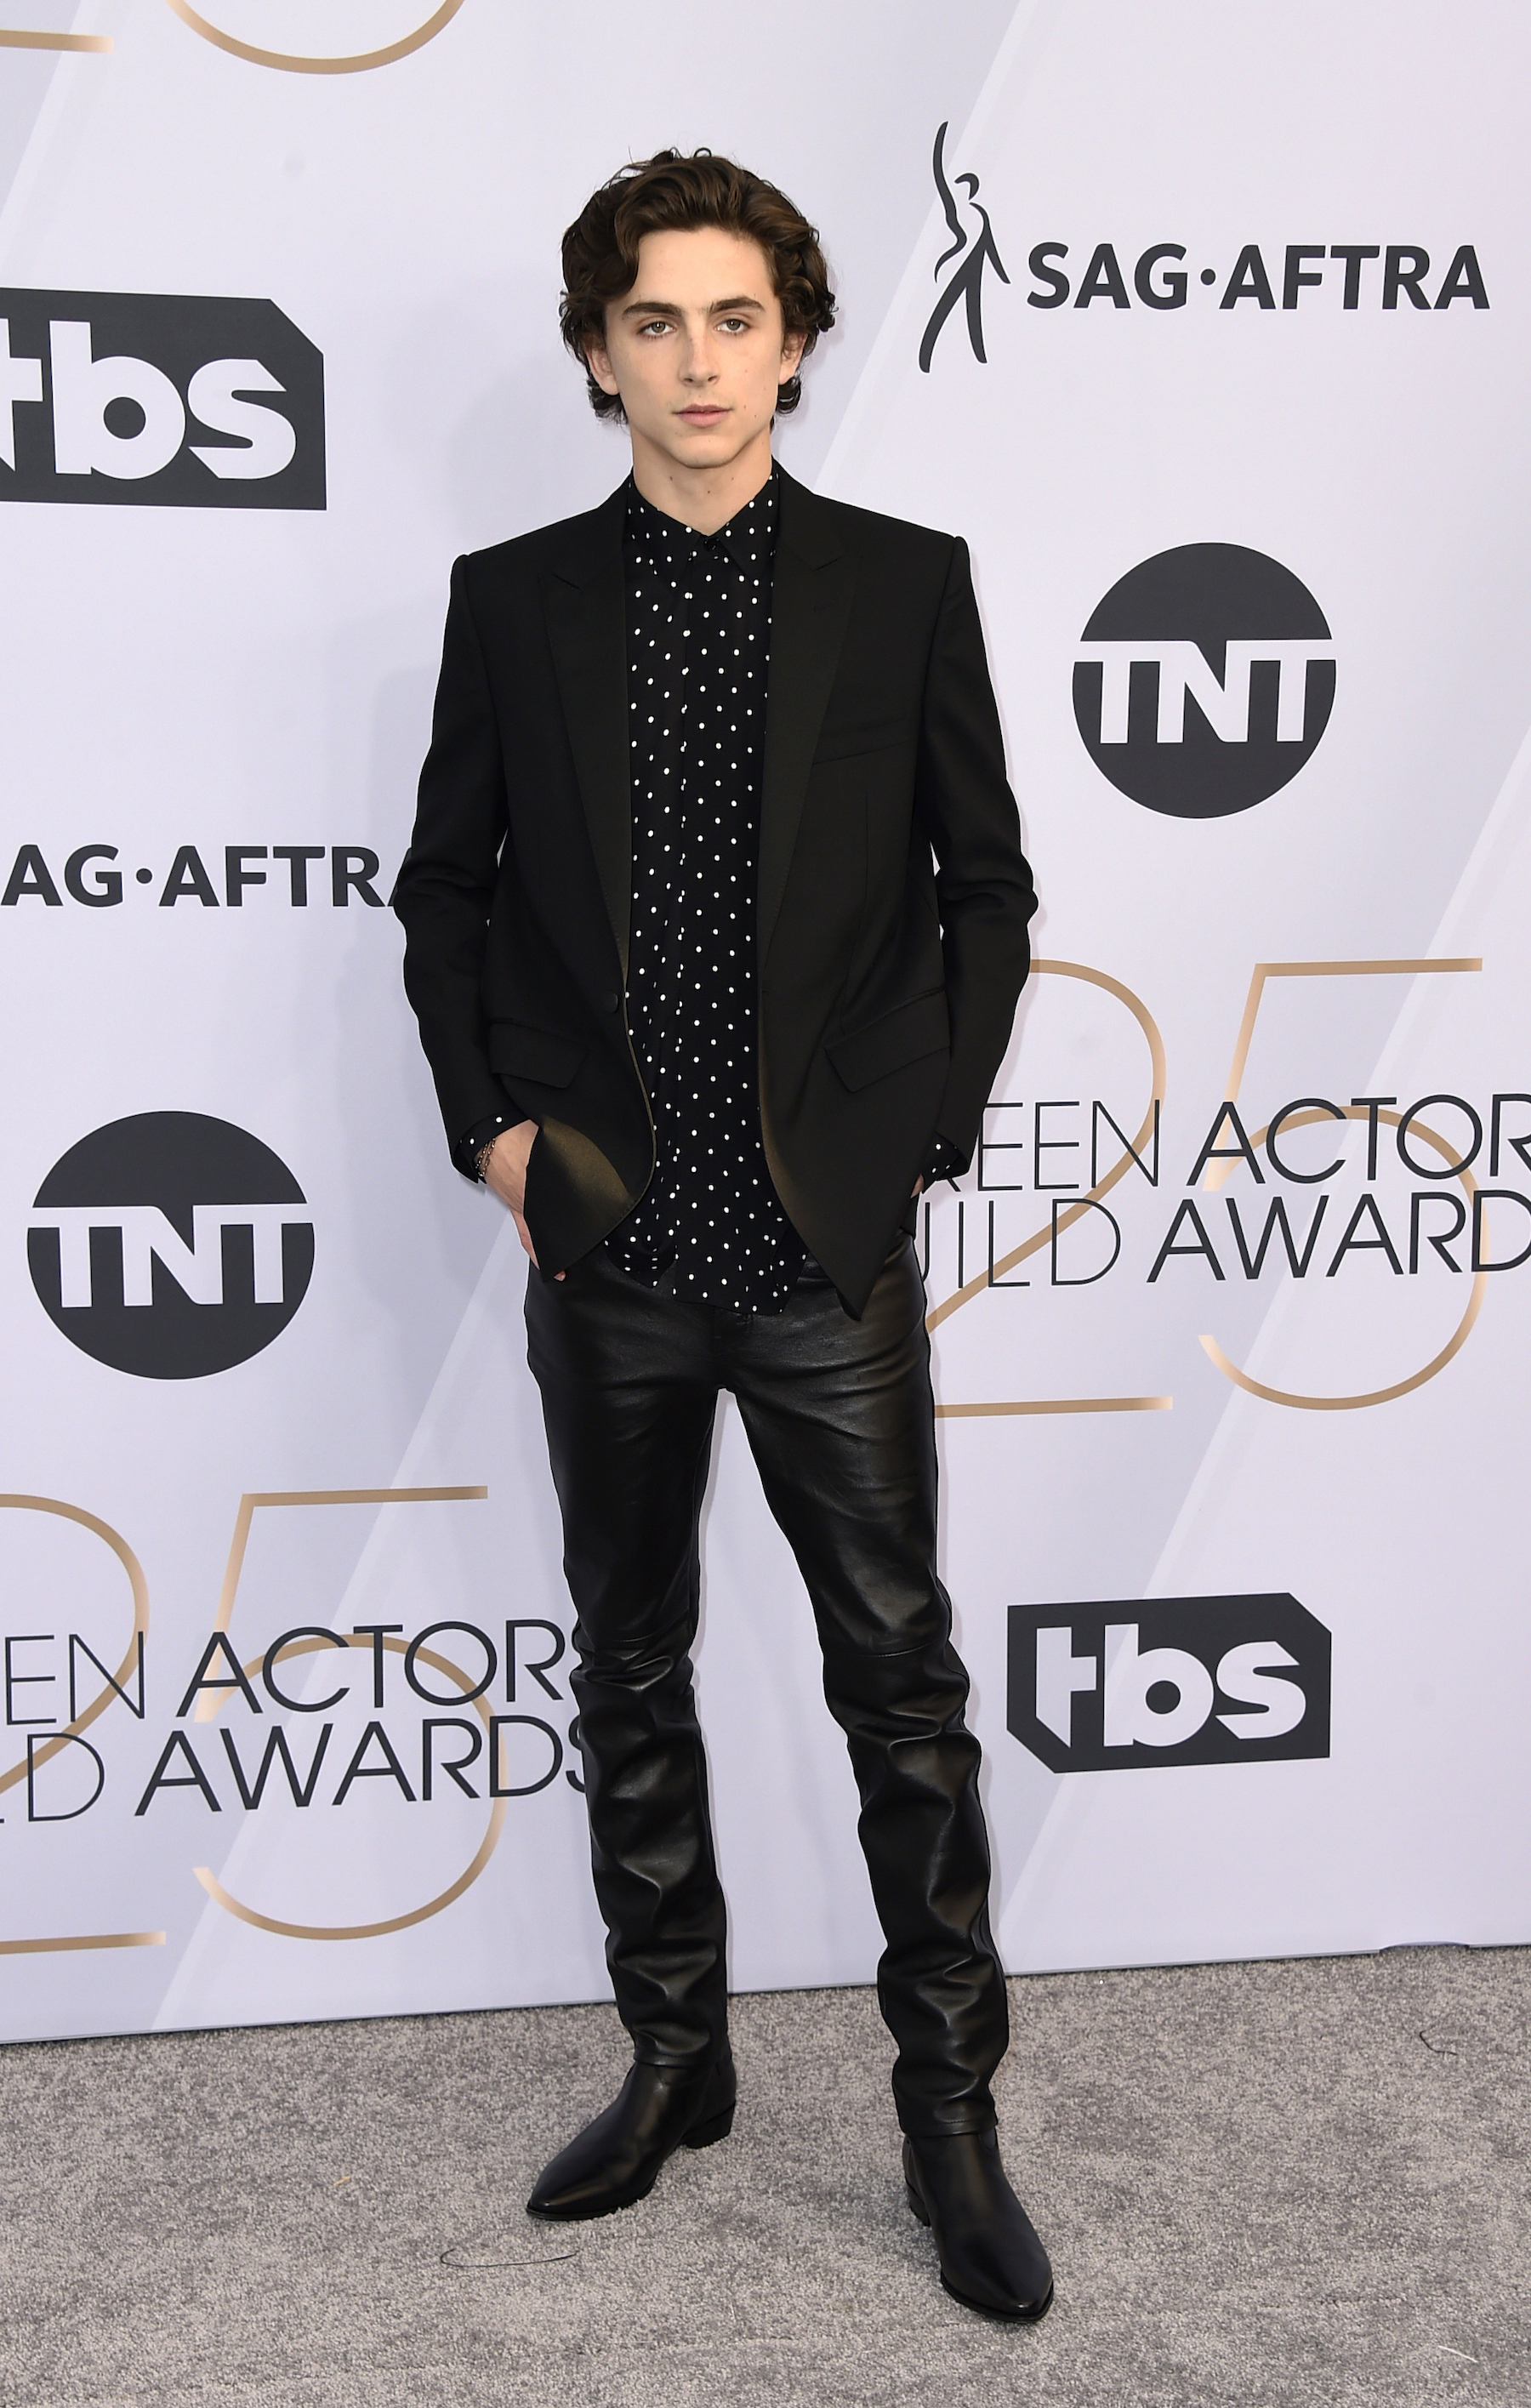 "<div class=""meta image-caption""><div class=""origin-logo origin-image ap""><span>AP</span></div><span class=""caption-text"">Timothee Chalamet arrives at the 25th annual Screen Actors Guild Awards at the Shrine Auditorium & Expo Hall on Sunday, Jan. 27, 2019, in Los Angeles. (Jordan Strauss/Invision/AP)</span></div>"